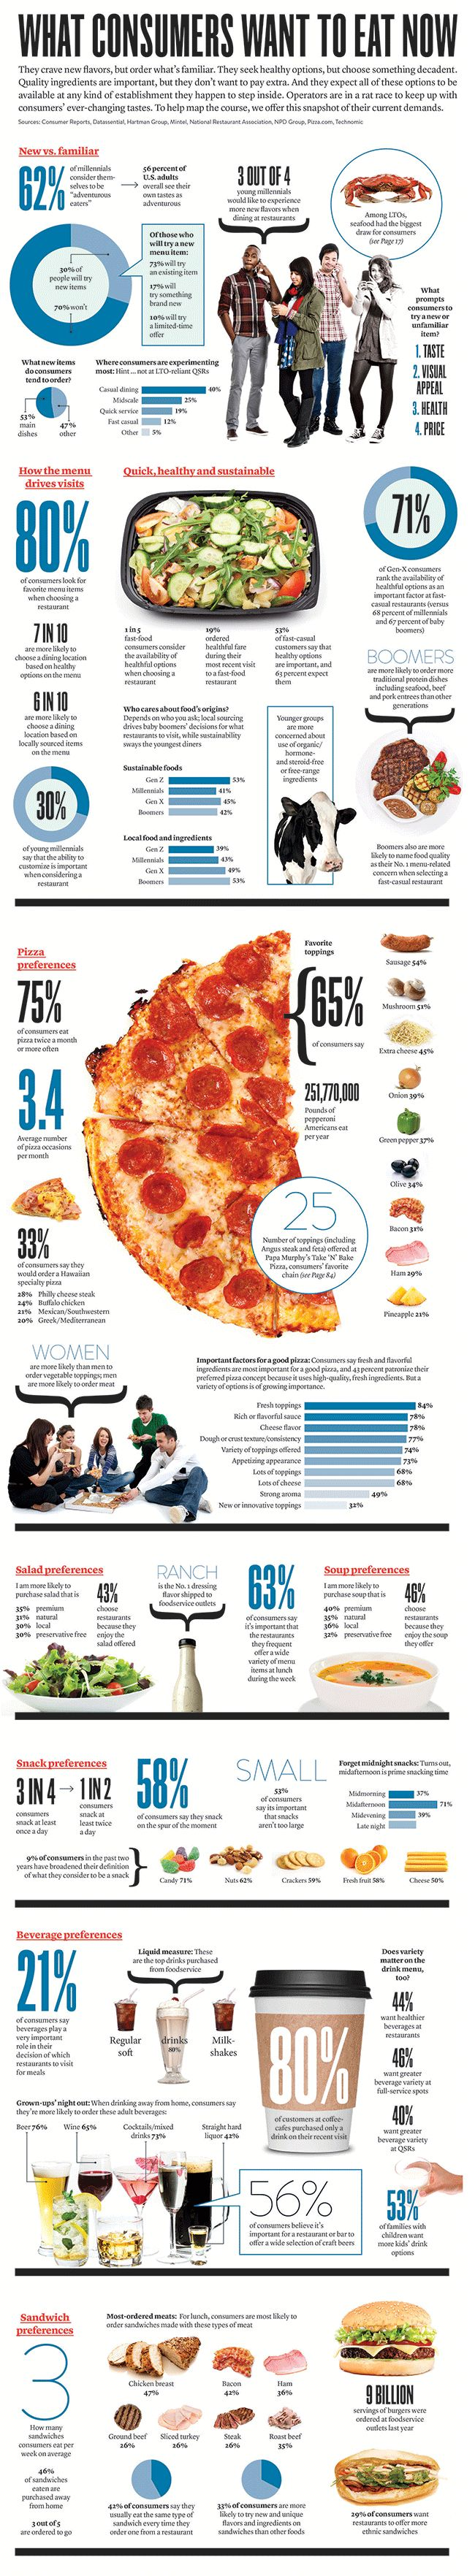 Infographic: What consumers want to eat now   Restaurant Business